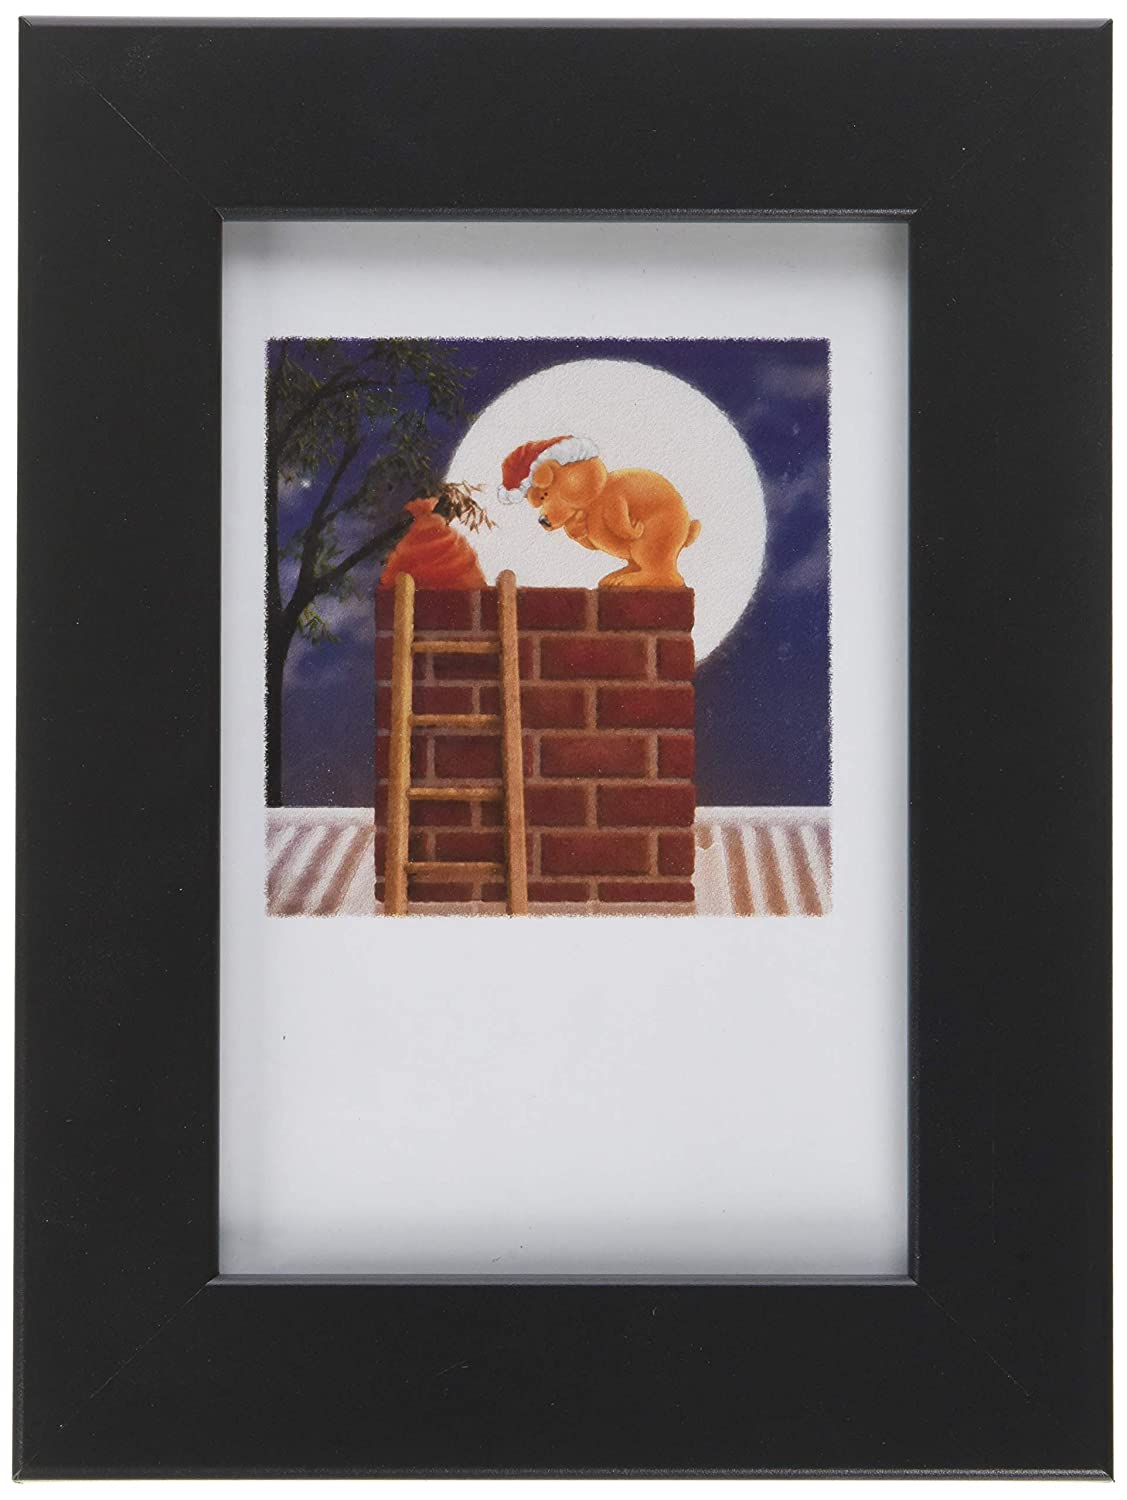 Only Print 7 x 4.75 Unframed Frame USA 153378 Chimney Challenge-FSPEAR132408 by Frank SpearUn